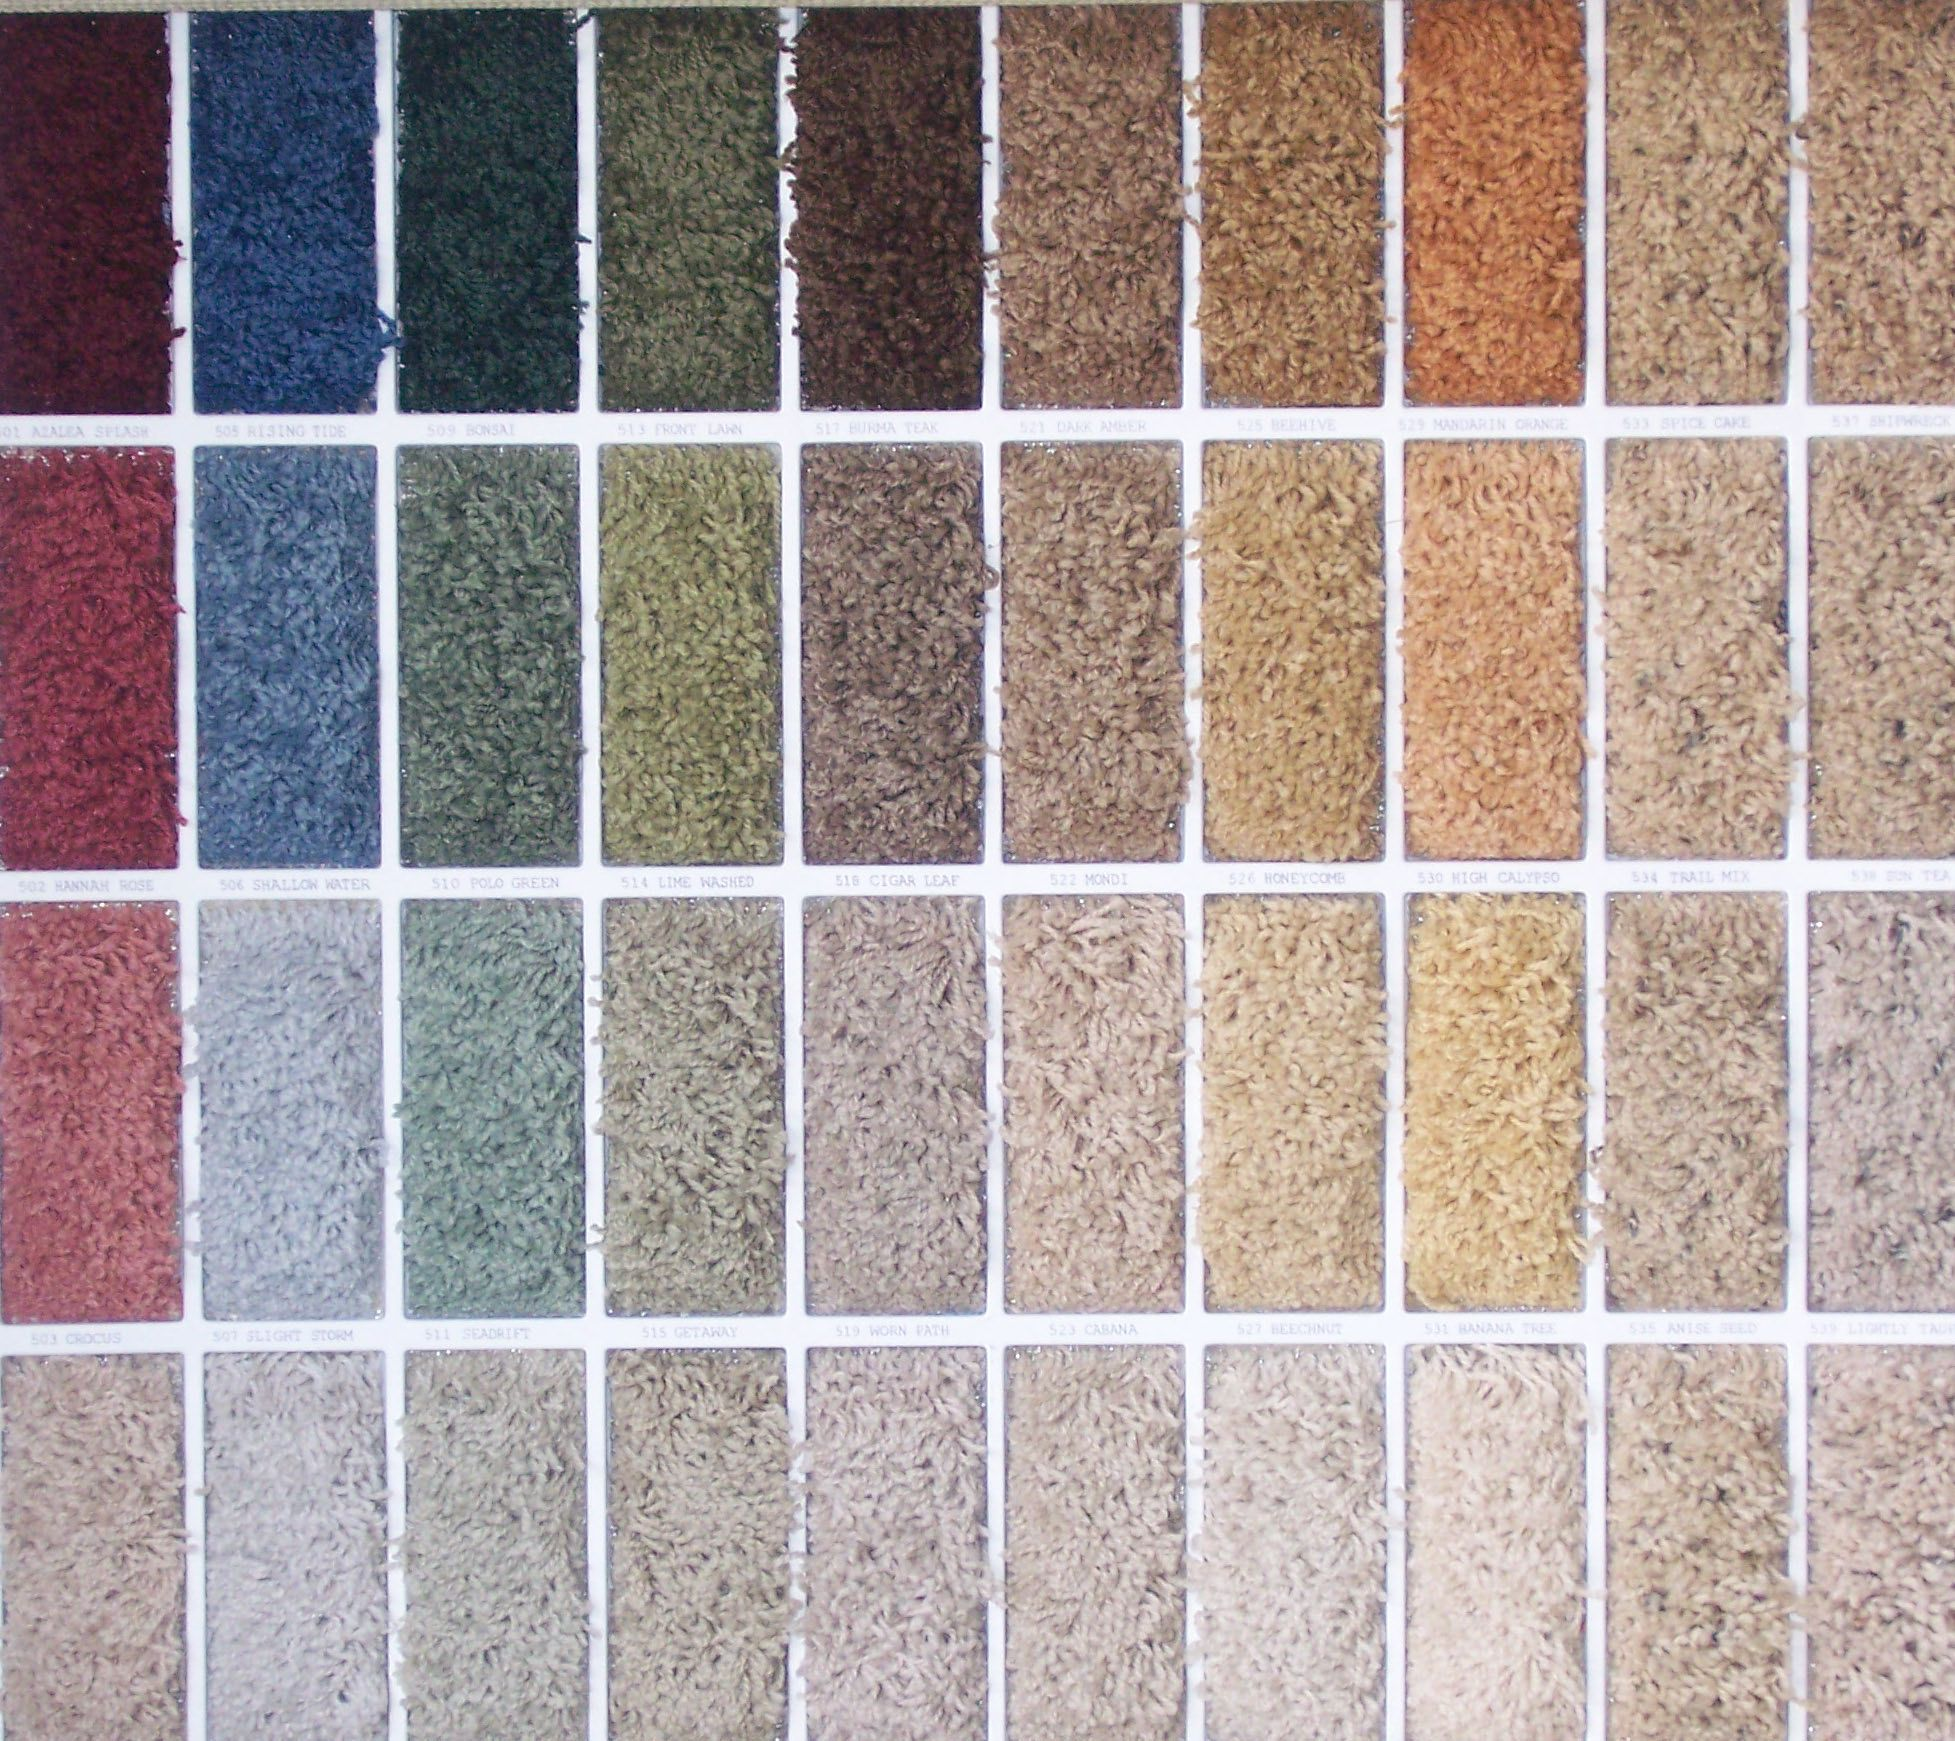 how much does mohawk smartstrand carpet cost – Meze Blog